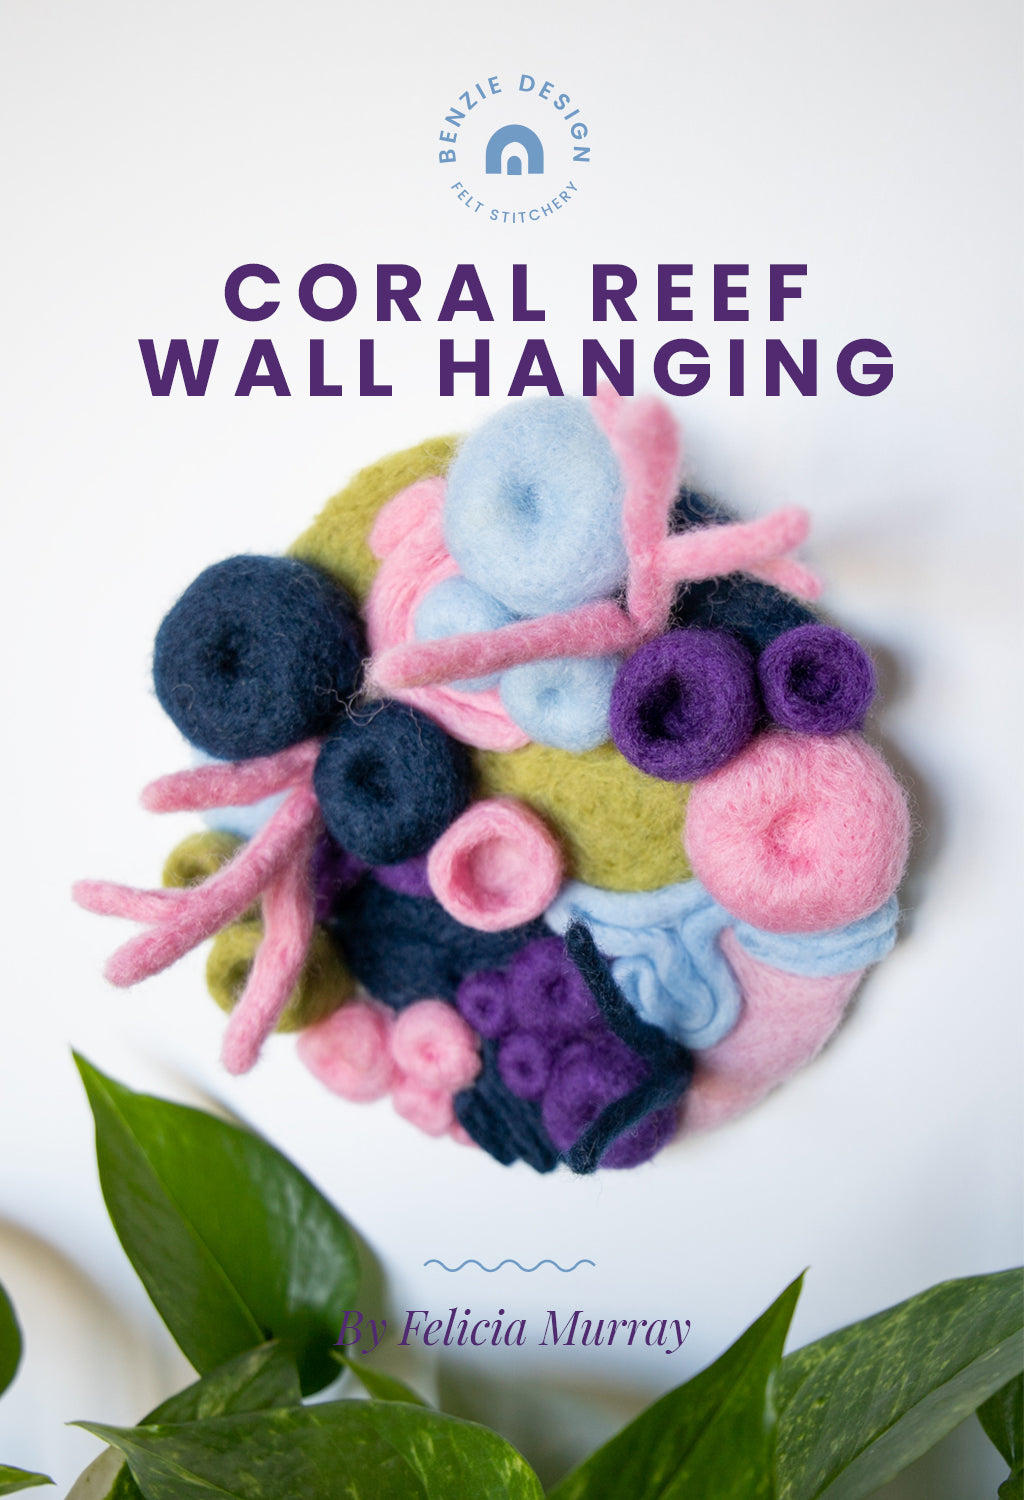 Coral reef wall hanging tutorial